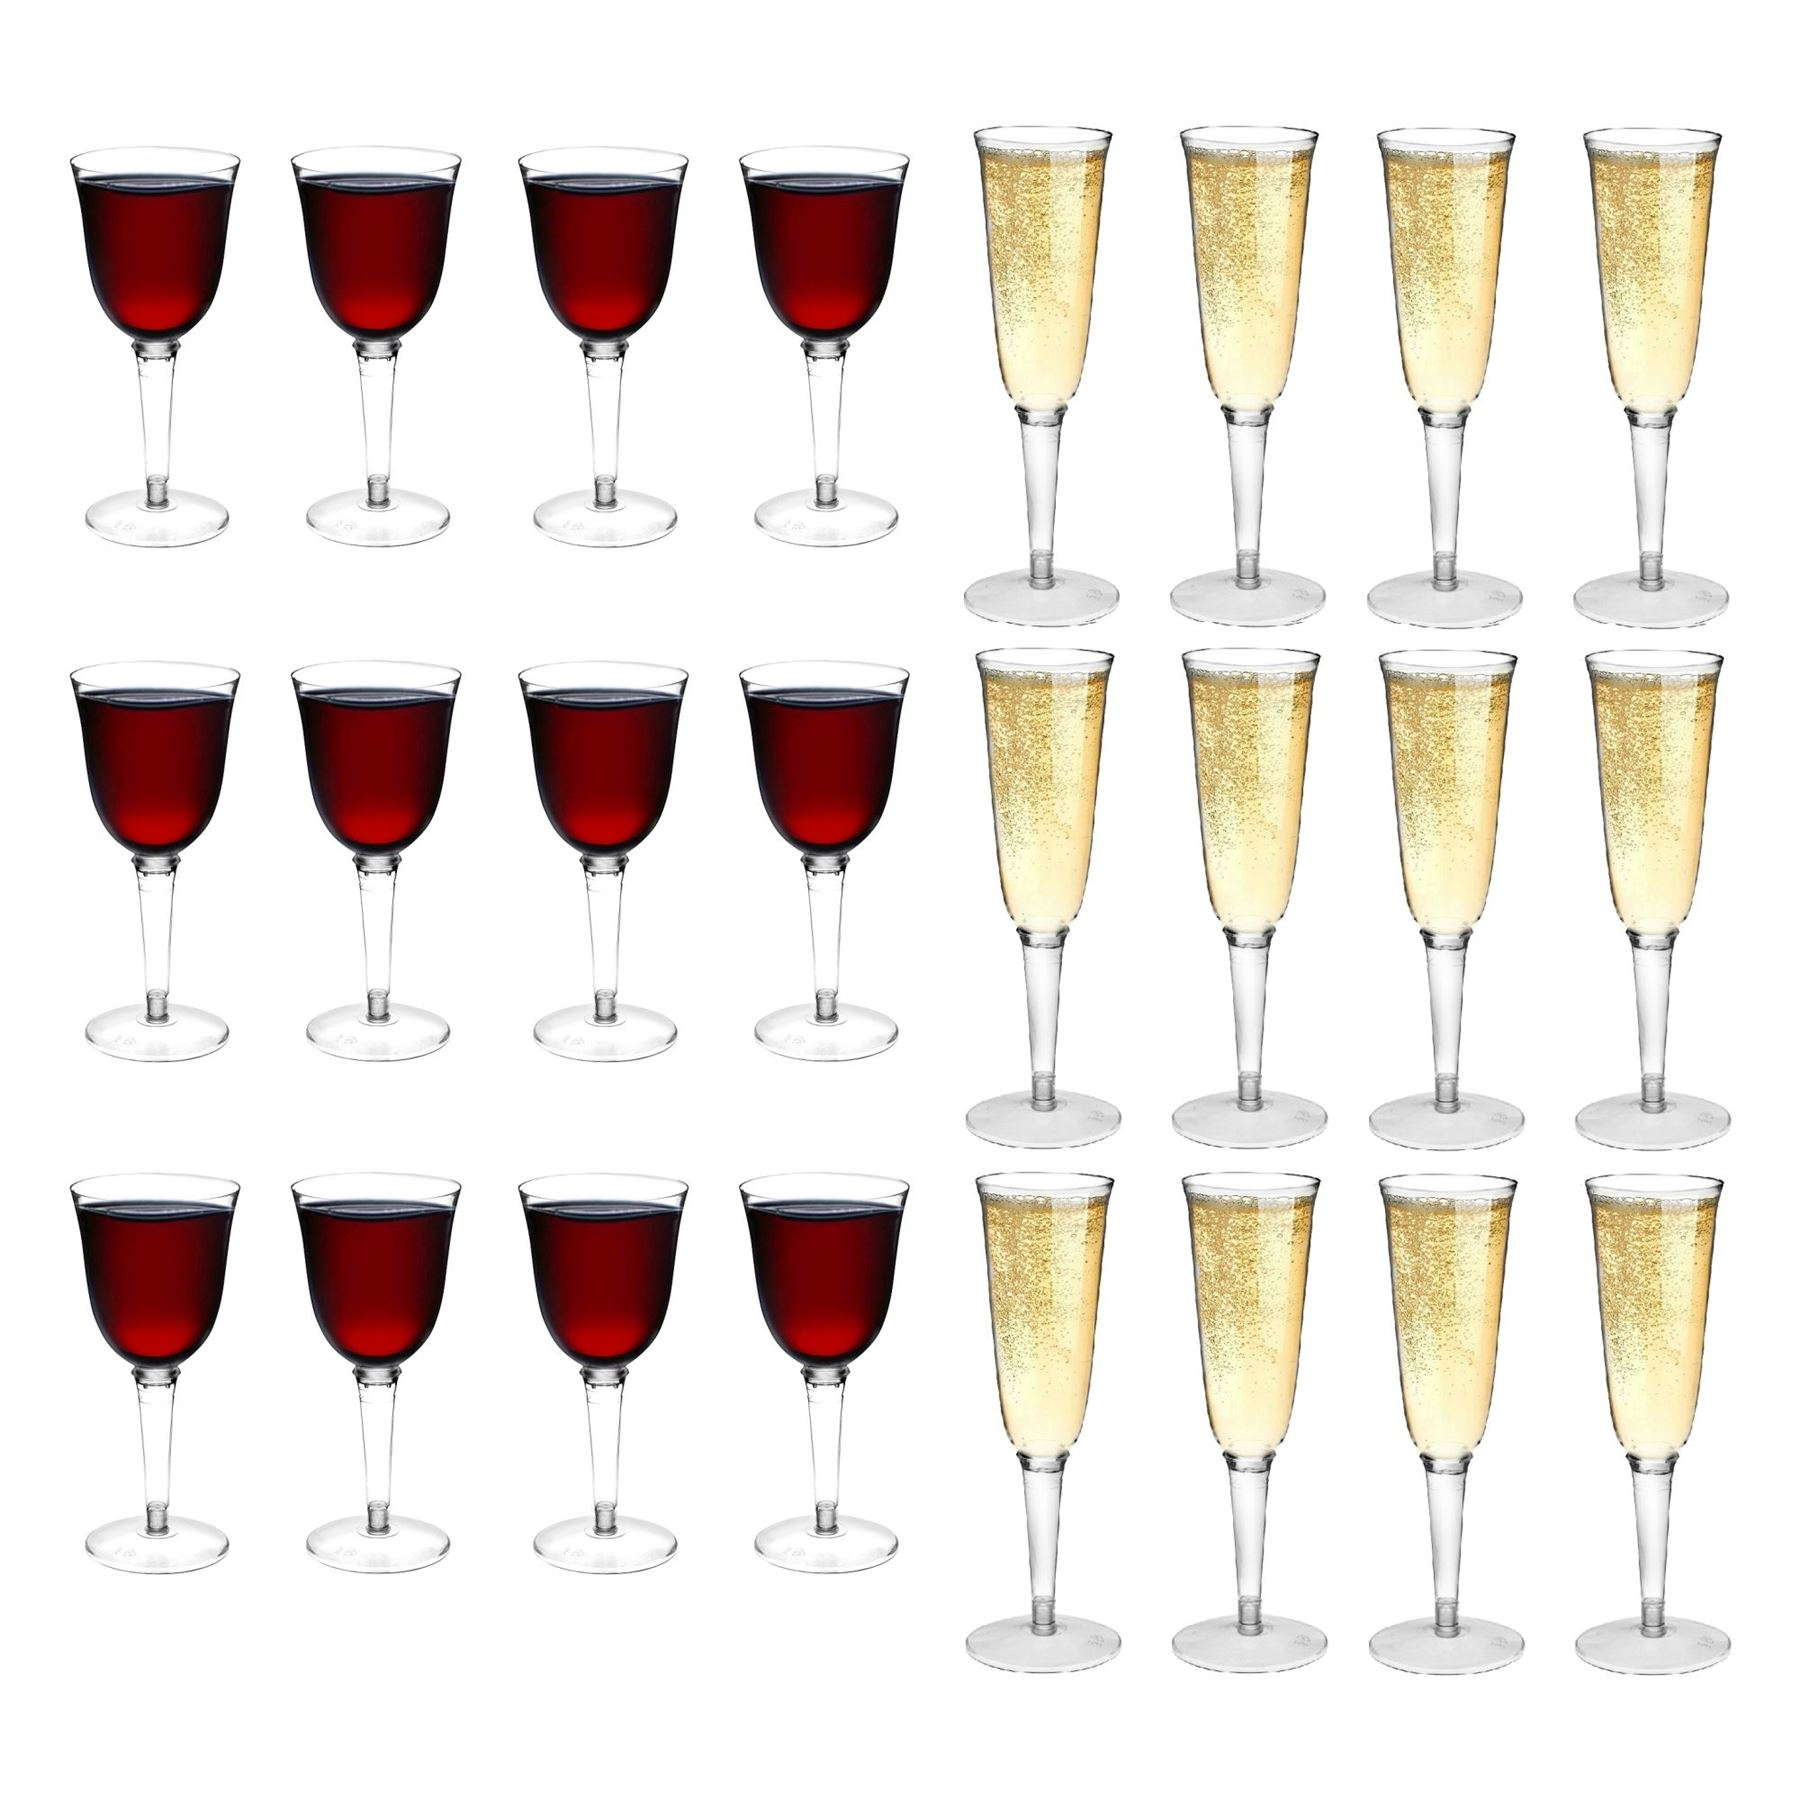 Plastic outdoor champagne flutes wine glasses strong for How strong is acrylic glass